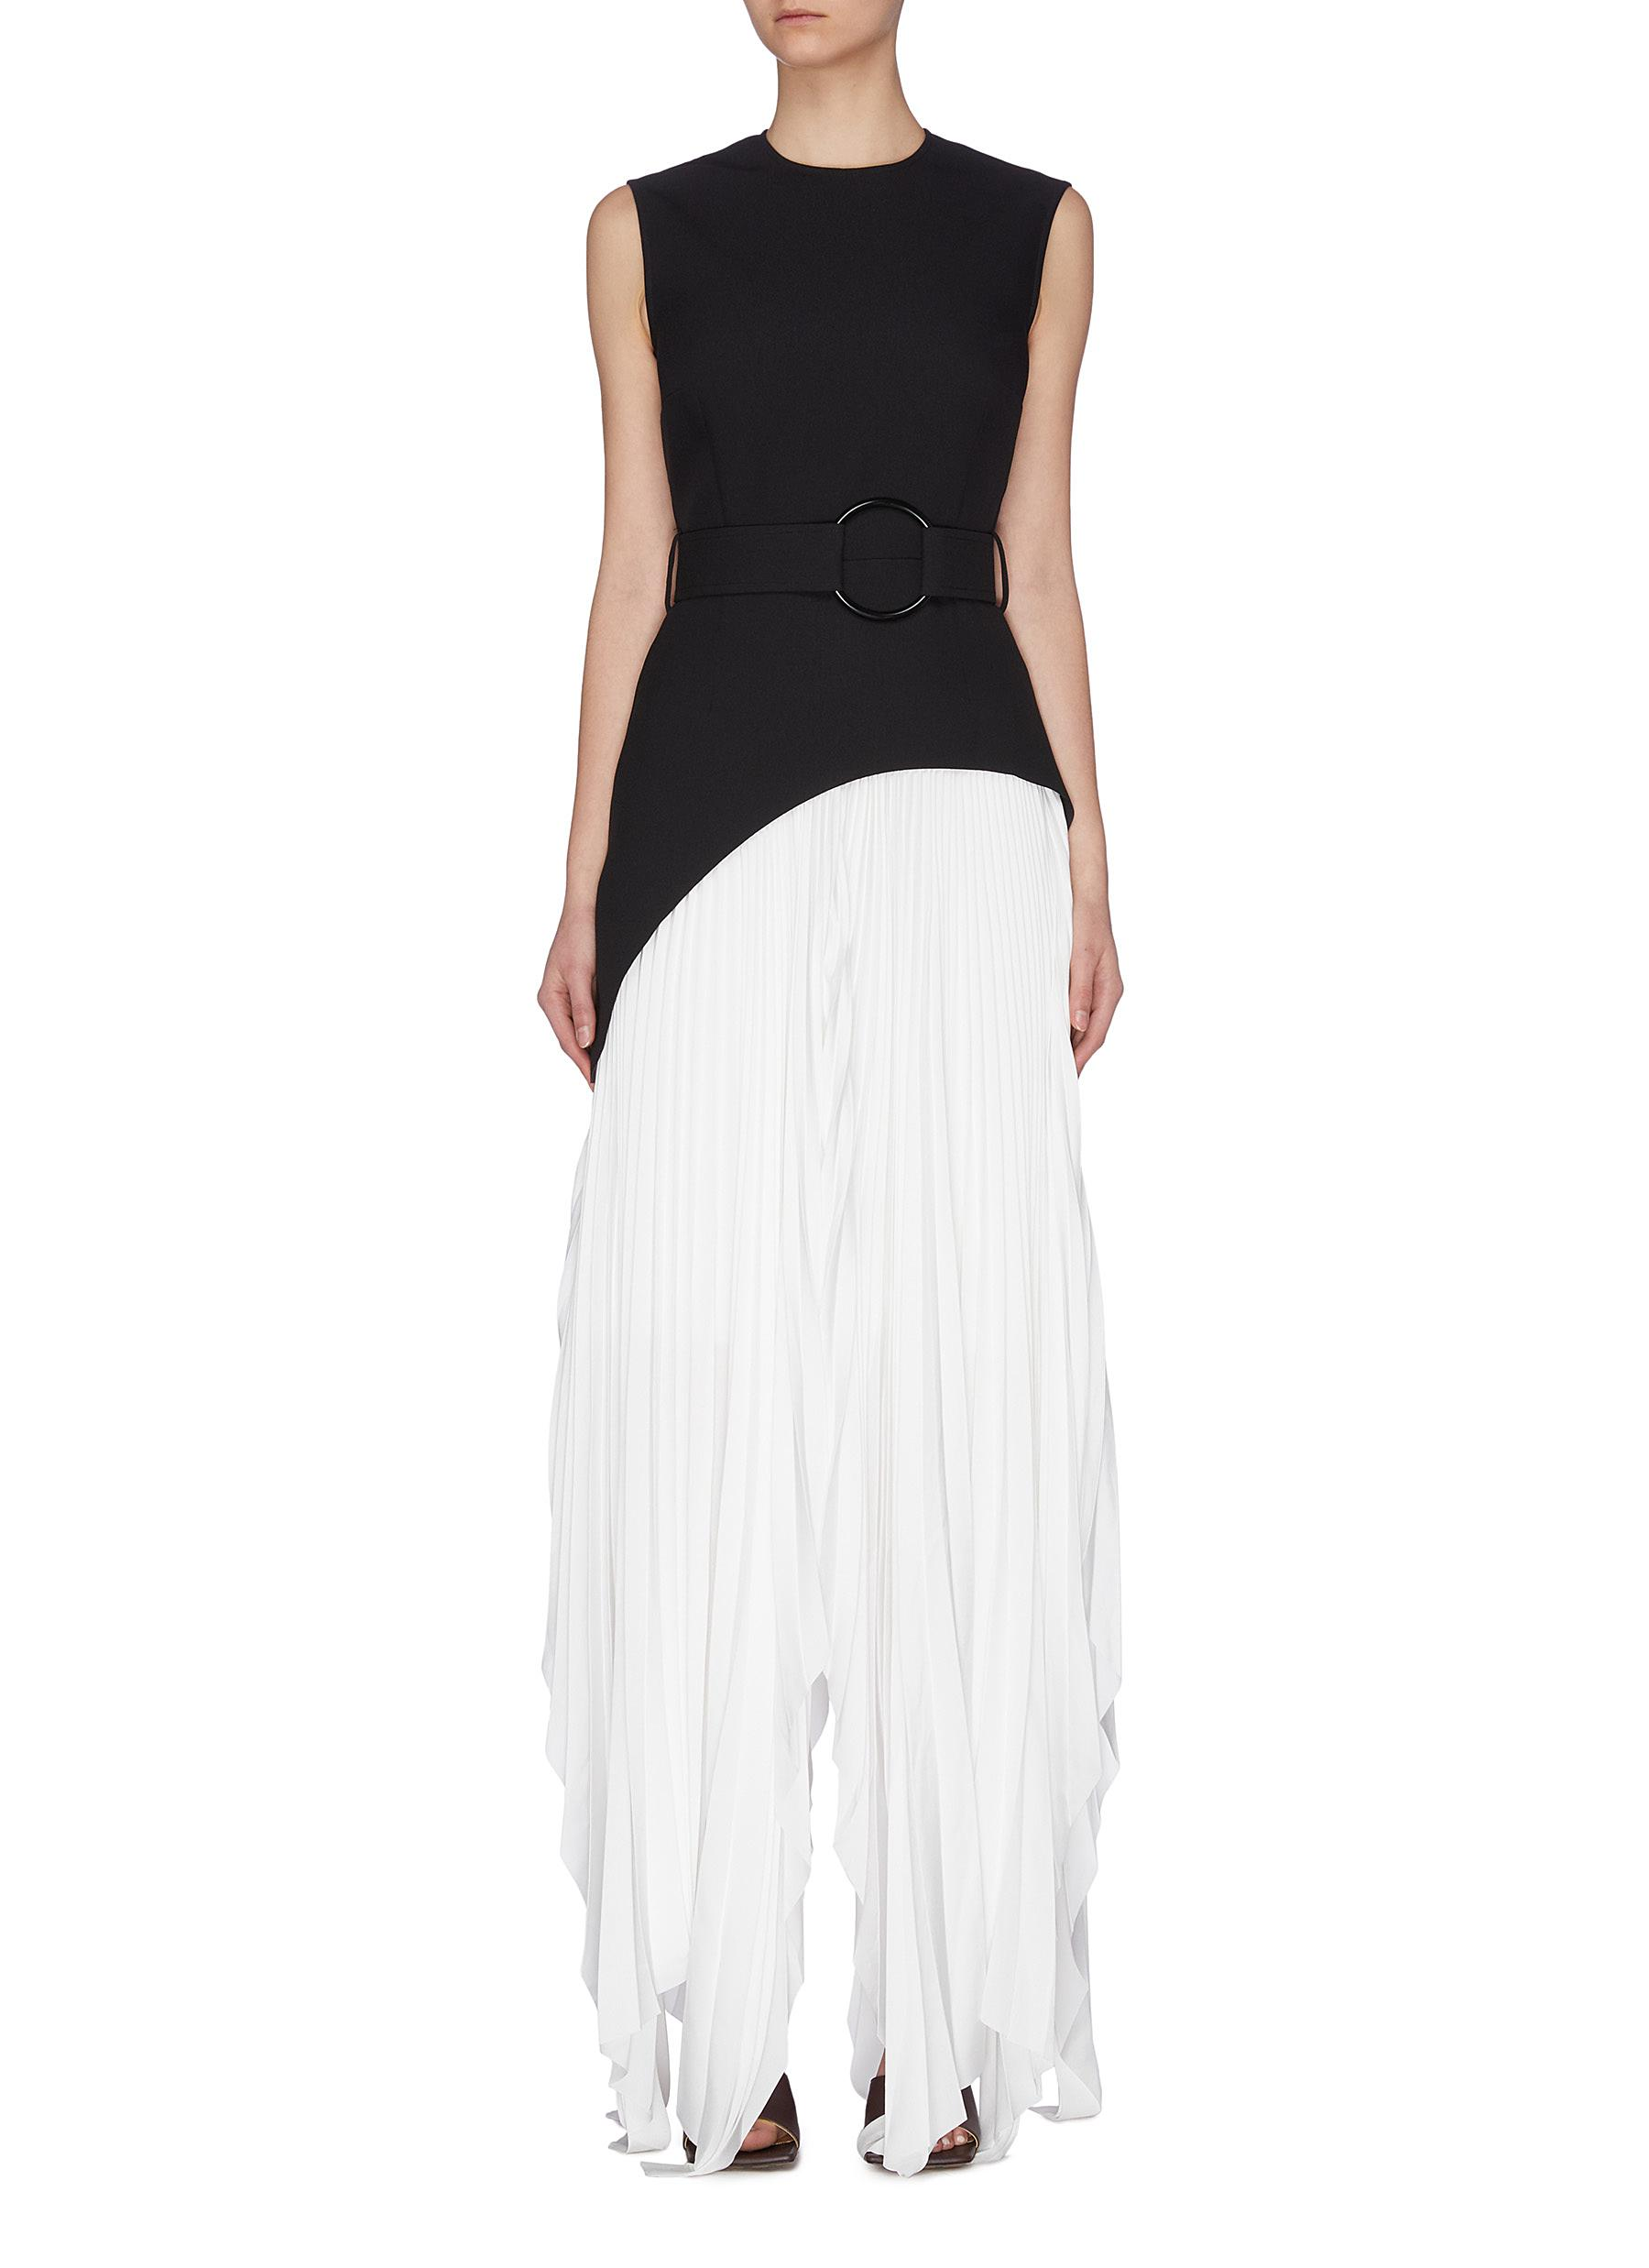 shop Solace London 'Anya' belted sleeveless asymmetric pleated maxi dress online